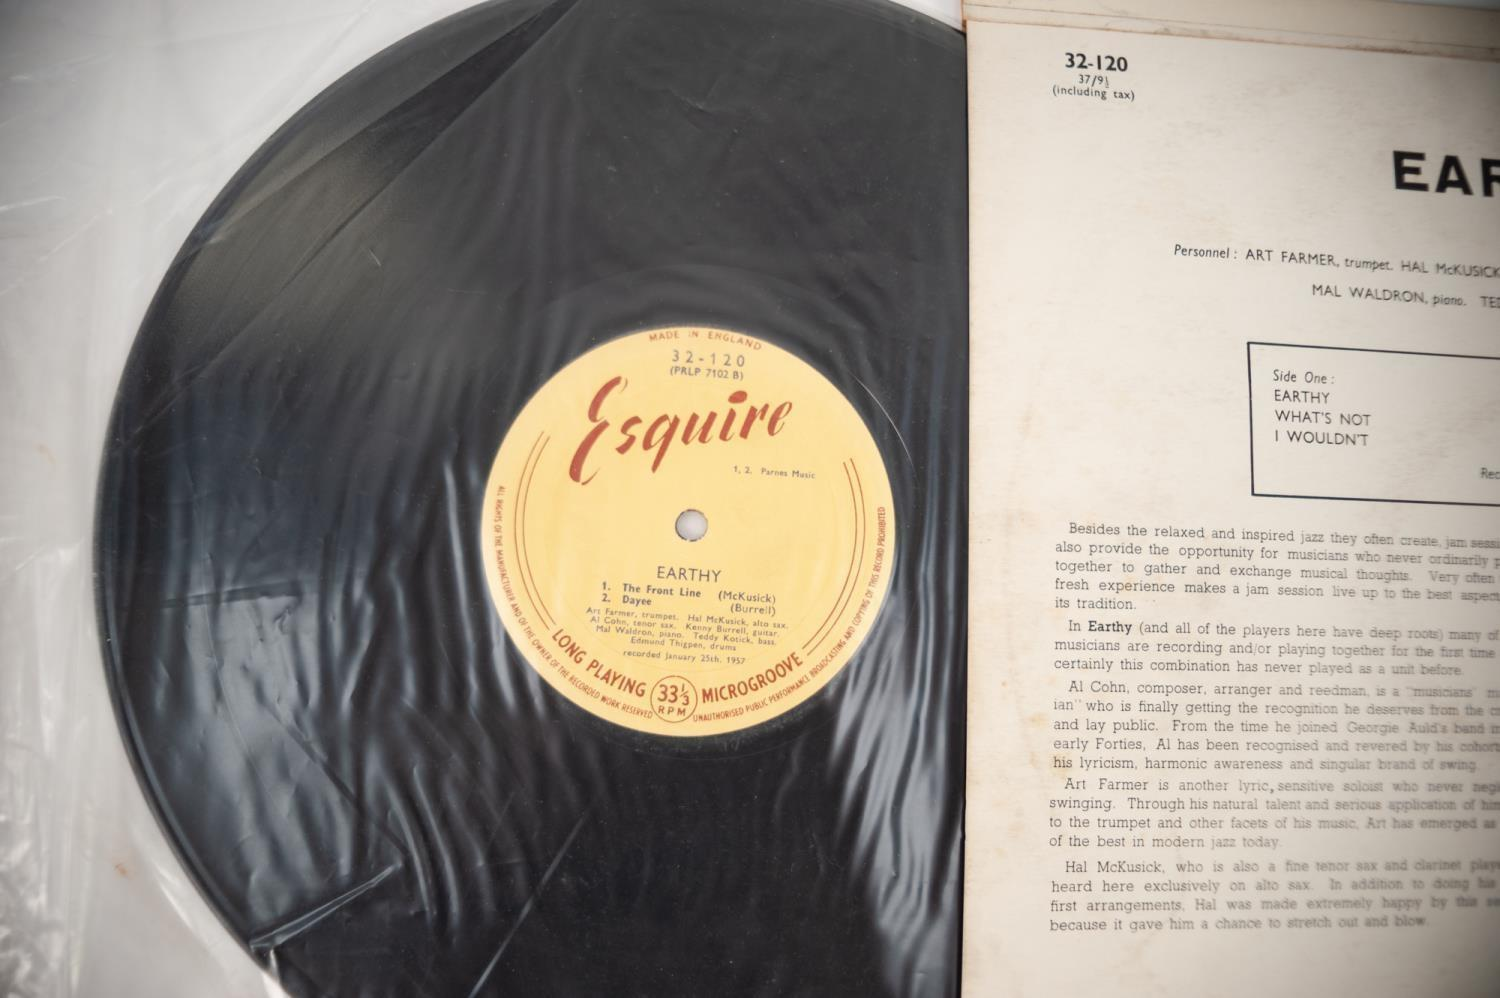 JAZZ, VINYL RECORDS- B IS FOR KENNY BURRELL-EARTHY (Prestige All Stars), Esquire (32-120). - Image 4 of 4